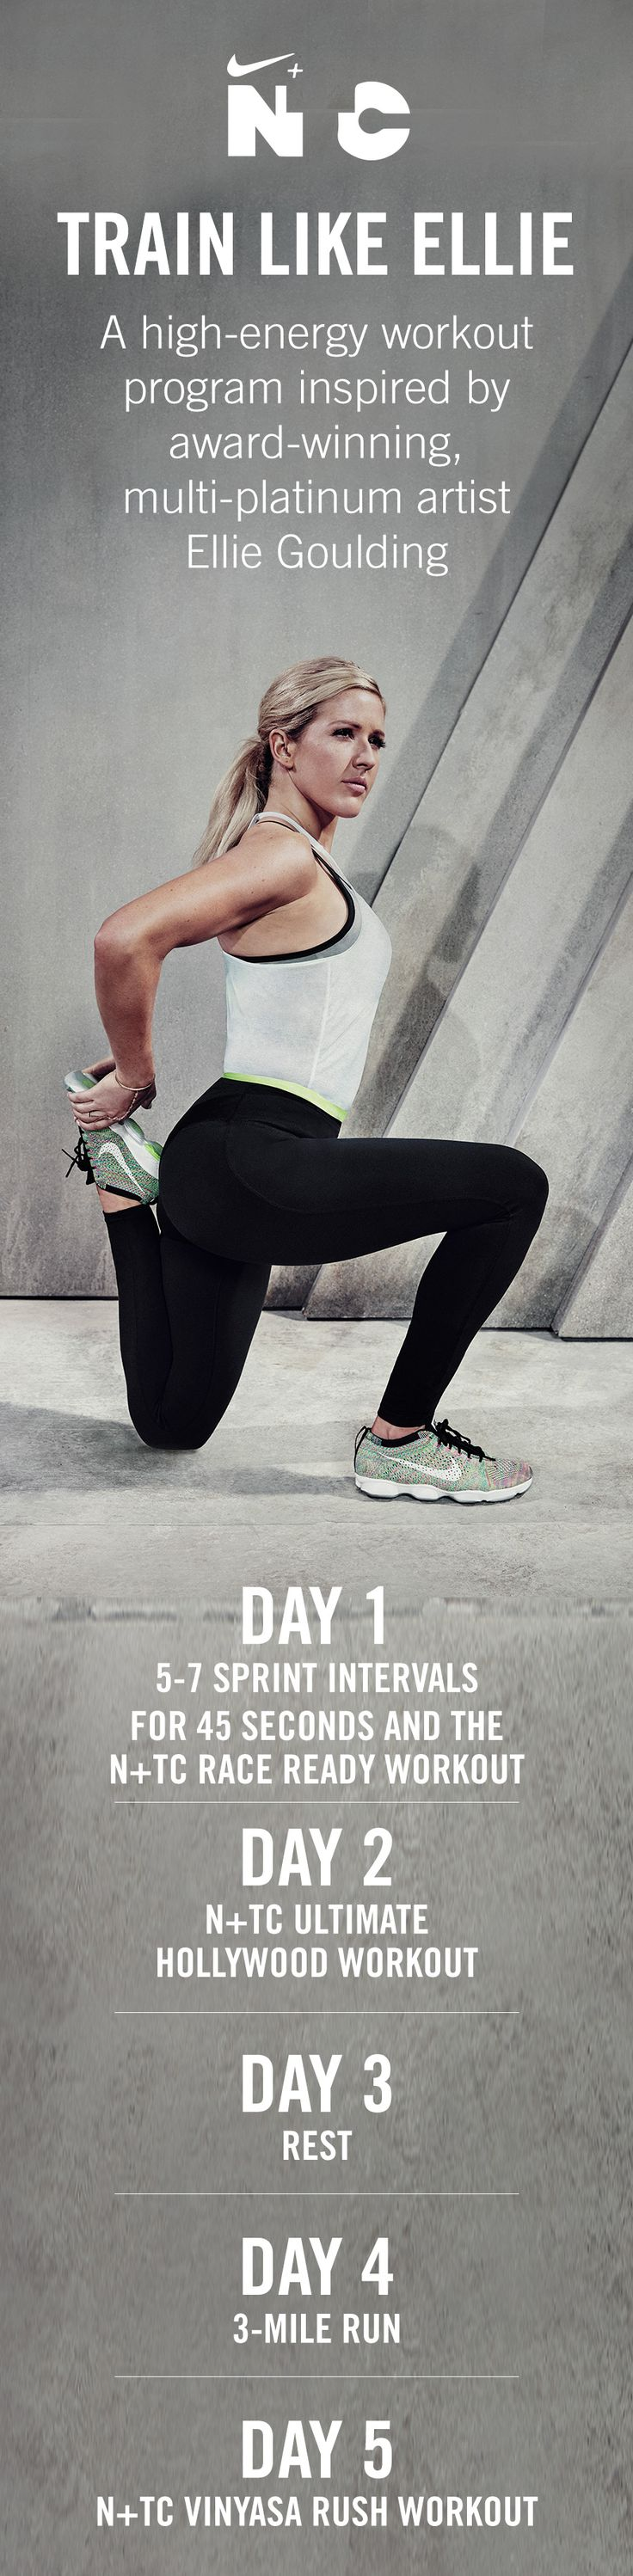 Kick-start your week with the Train Like Ellie Goulding 5-day challenge.